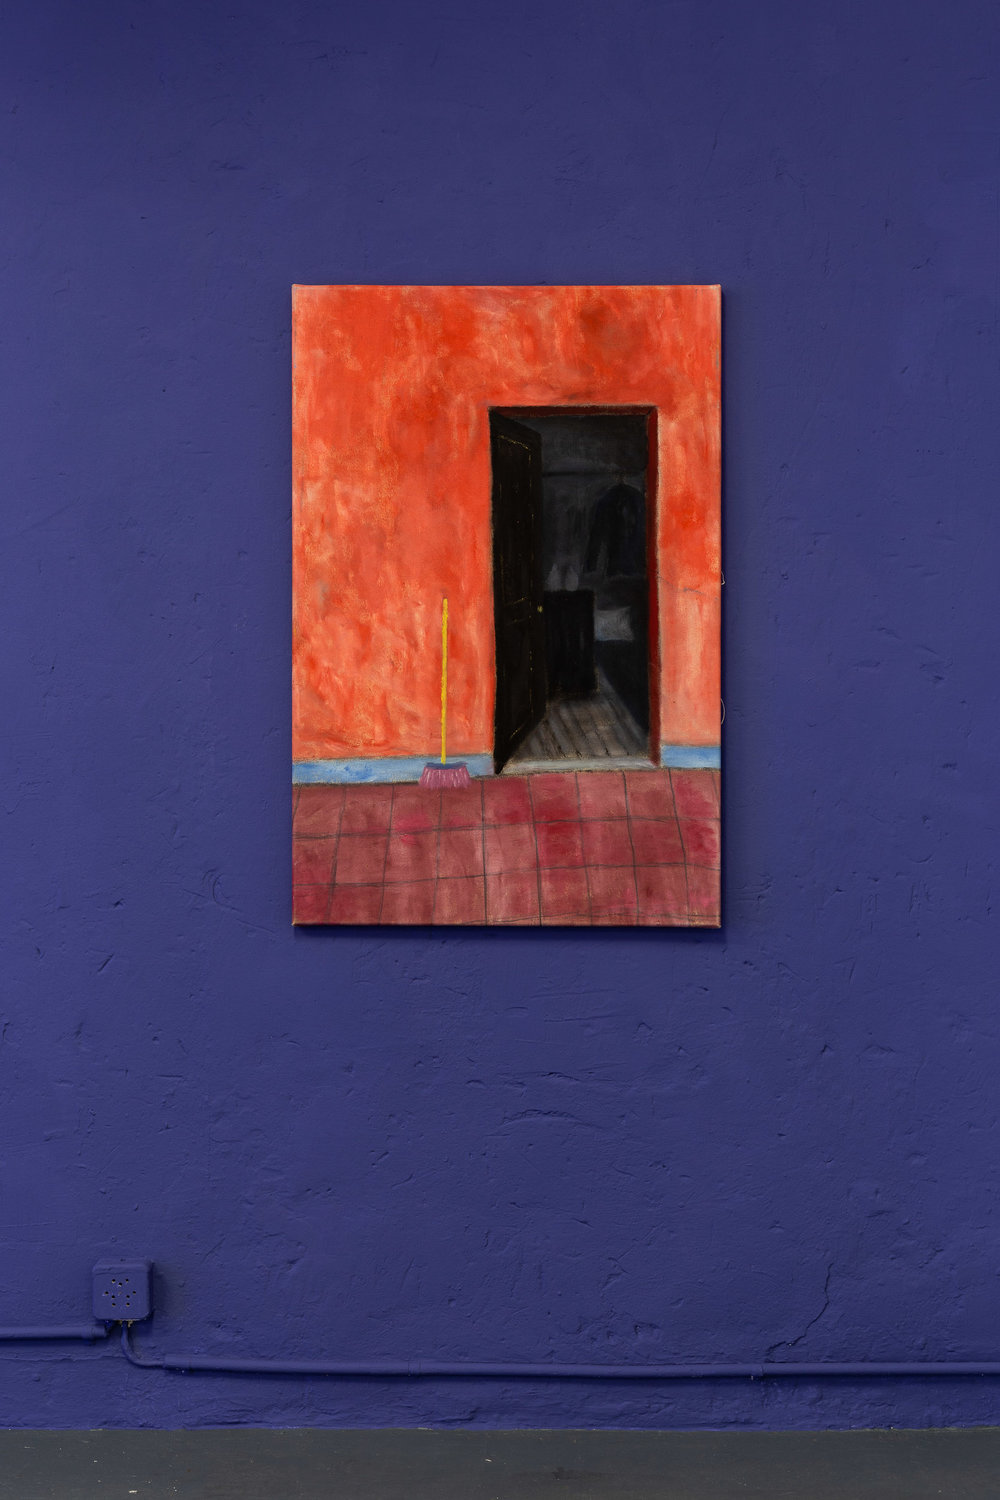 Dieter Hall,  Mexican Hallway,  2002, Oil on canvas, 90 x 60 cm  Photo: Kilian Bannwart